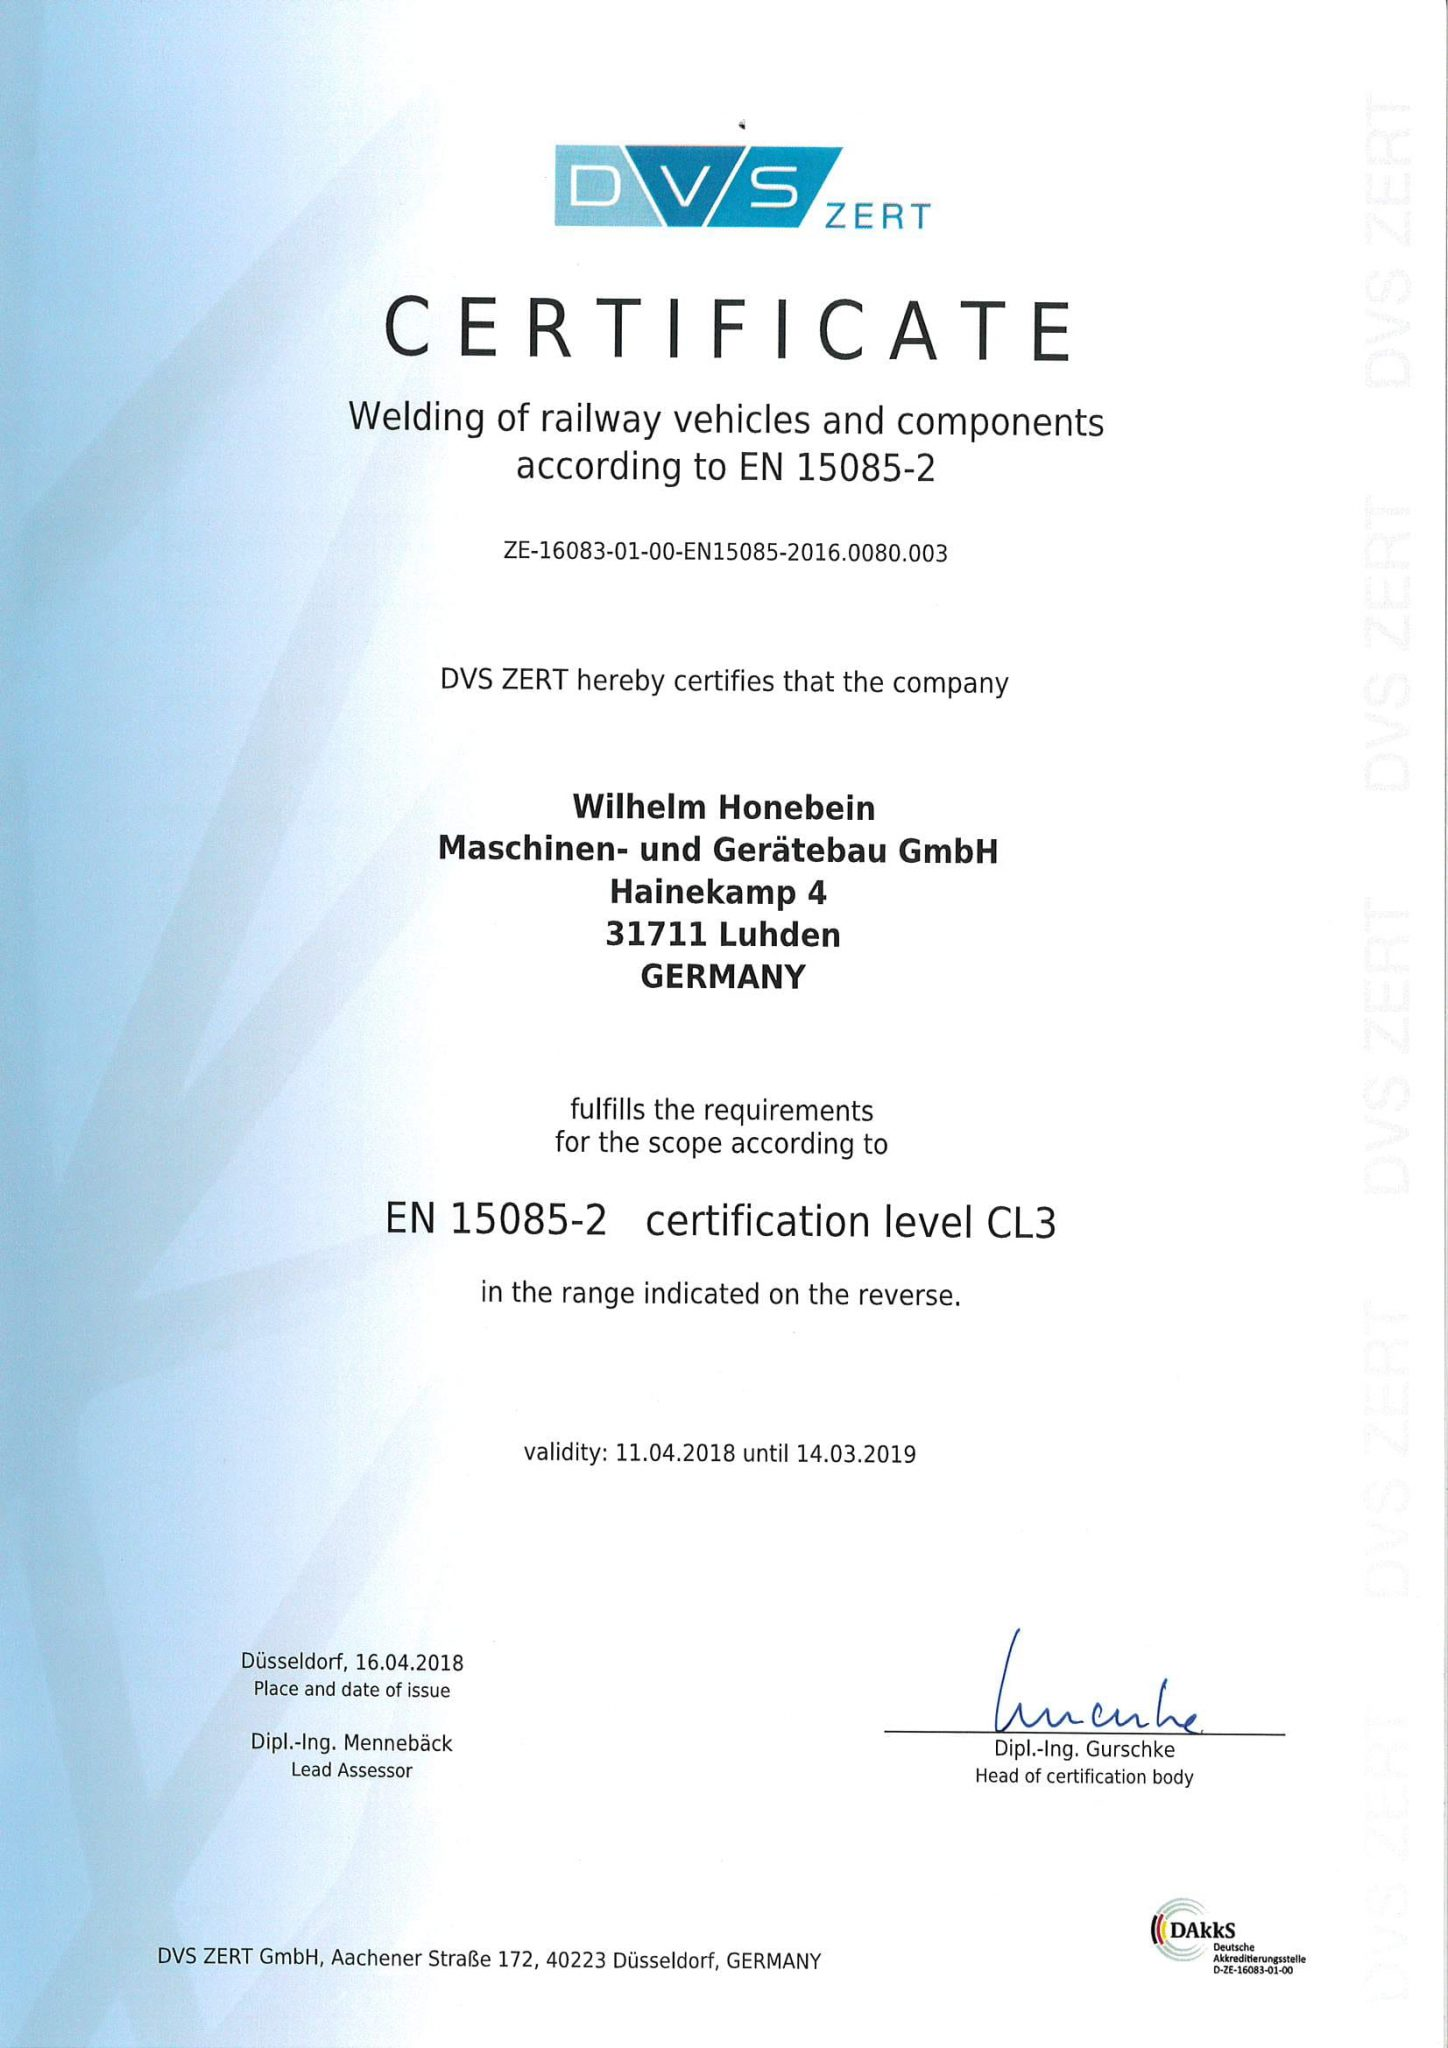 Certificate for Welding of railway vehicles and components according to EN 15085-2 level CL 3